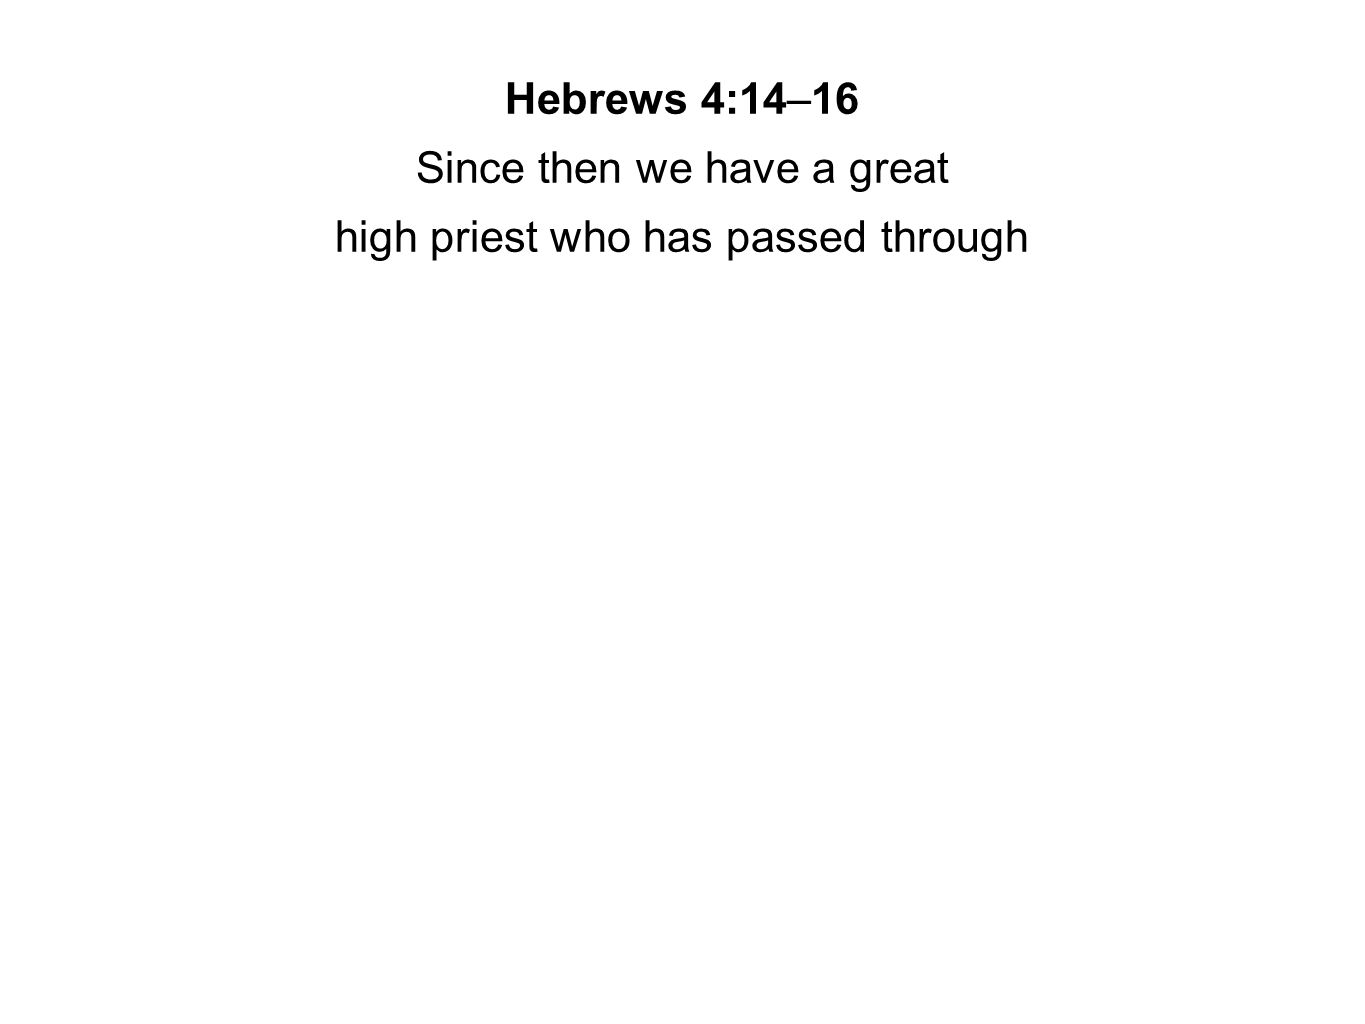 Hebrews 4:14–16 Since then we have a great high priest who has passed through